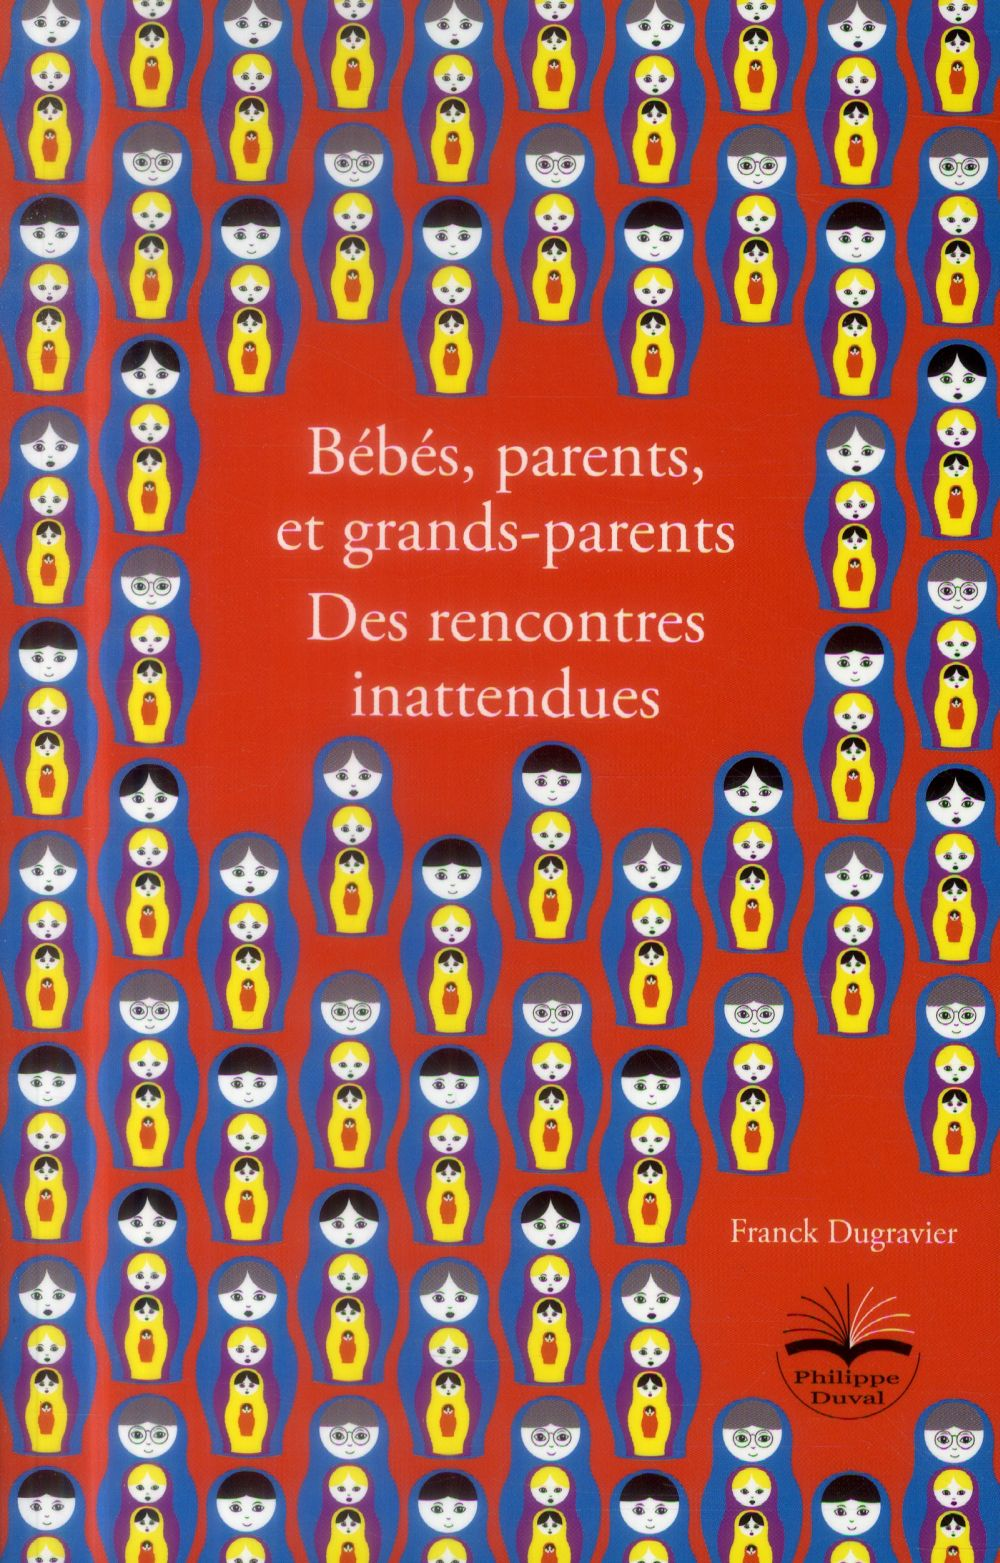 BEBES PARENTS ET GRANDS PARENTS  DES RENCONTRES INATTENDUES